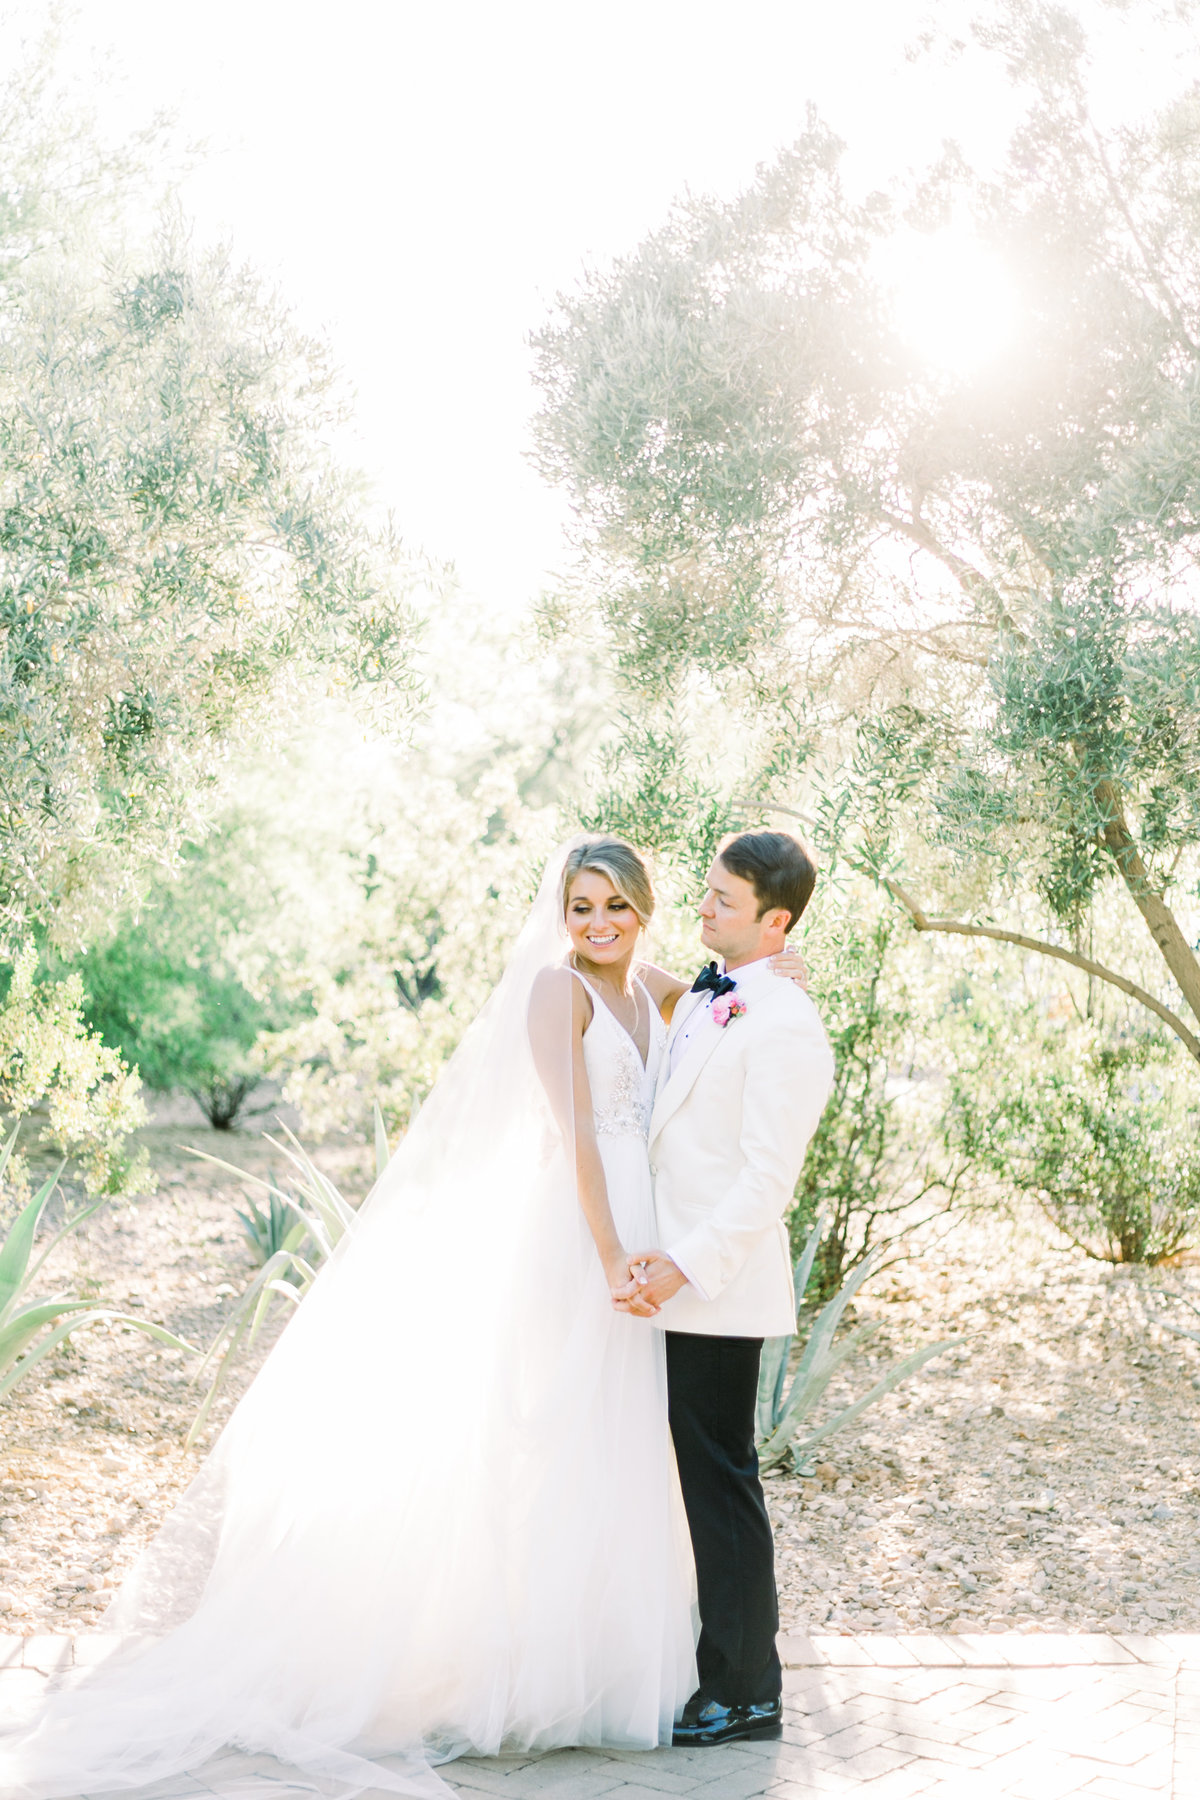 Karlie Colleen Photography - El Chorro Arizona Desert Wedding - Kylie & Doug-842